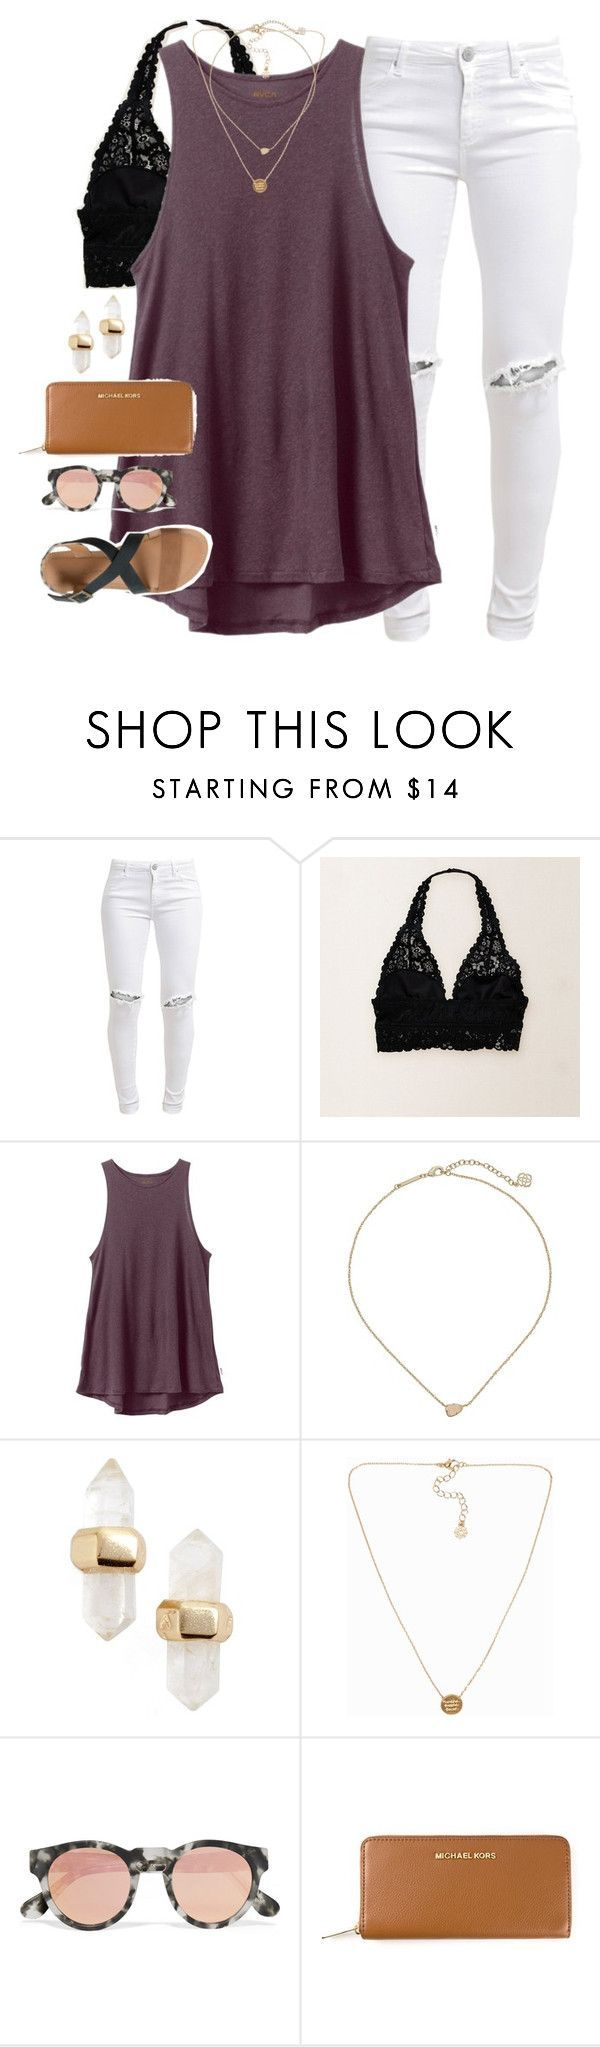 """""""a negative mind will never give you a positive life"""" by emmig02 ❤ liked on Polyvore featuring FiveUnits, Aerie, RVCA, Kendra Scott, Pieces, Westward Leaning, MICHAEL Michael Kors and IPANEMA"""